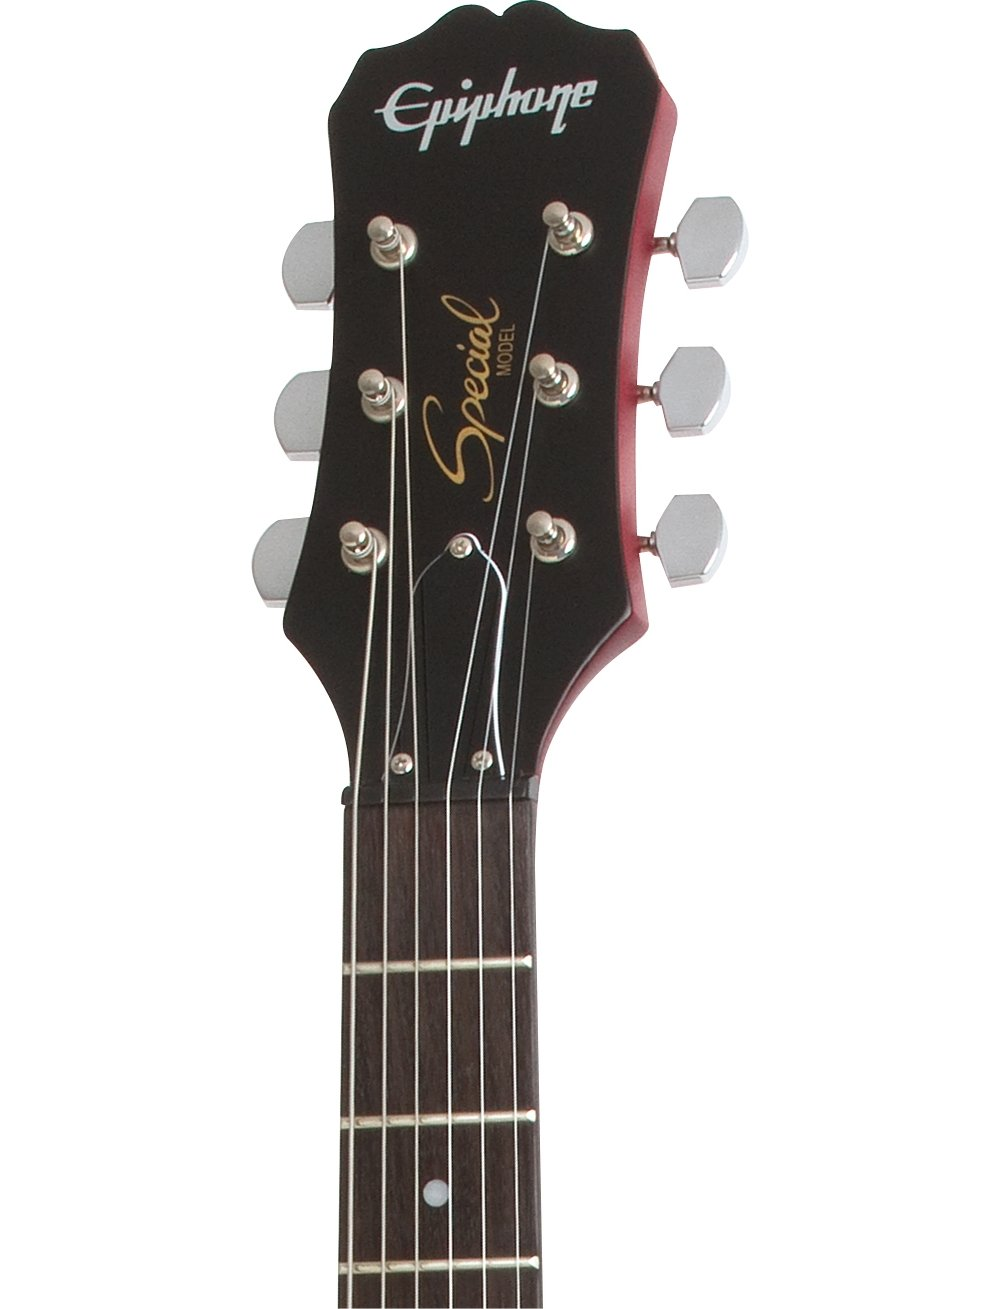 epiphone les paul special i p90 electric guitar worn cherry guitar affinity. Black Bedroom Furniture Sets. Home Design Ideas